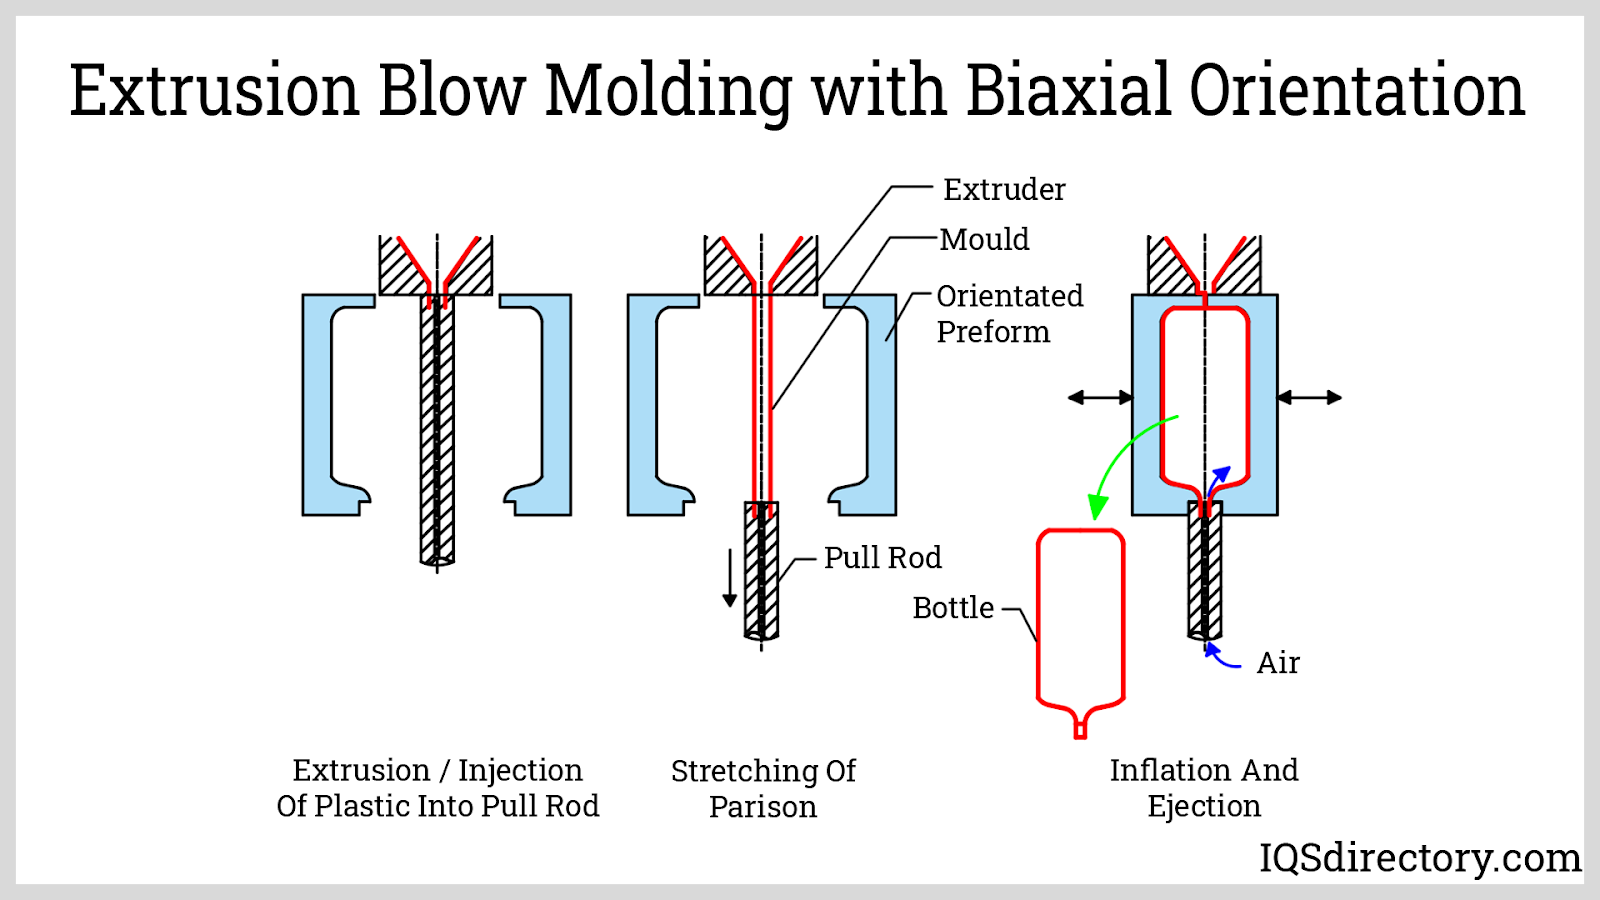 Extrusion Blow Molding with Biaxial Orientation